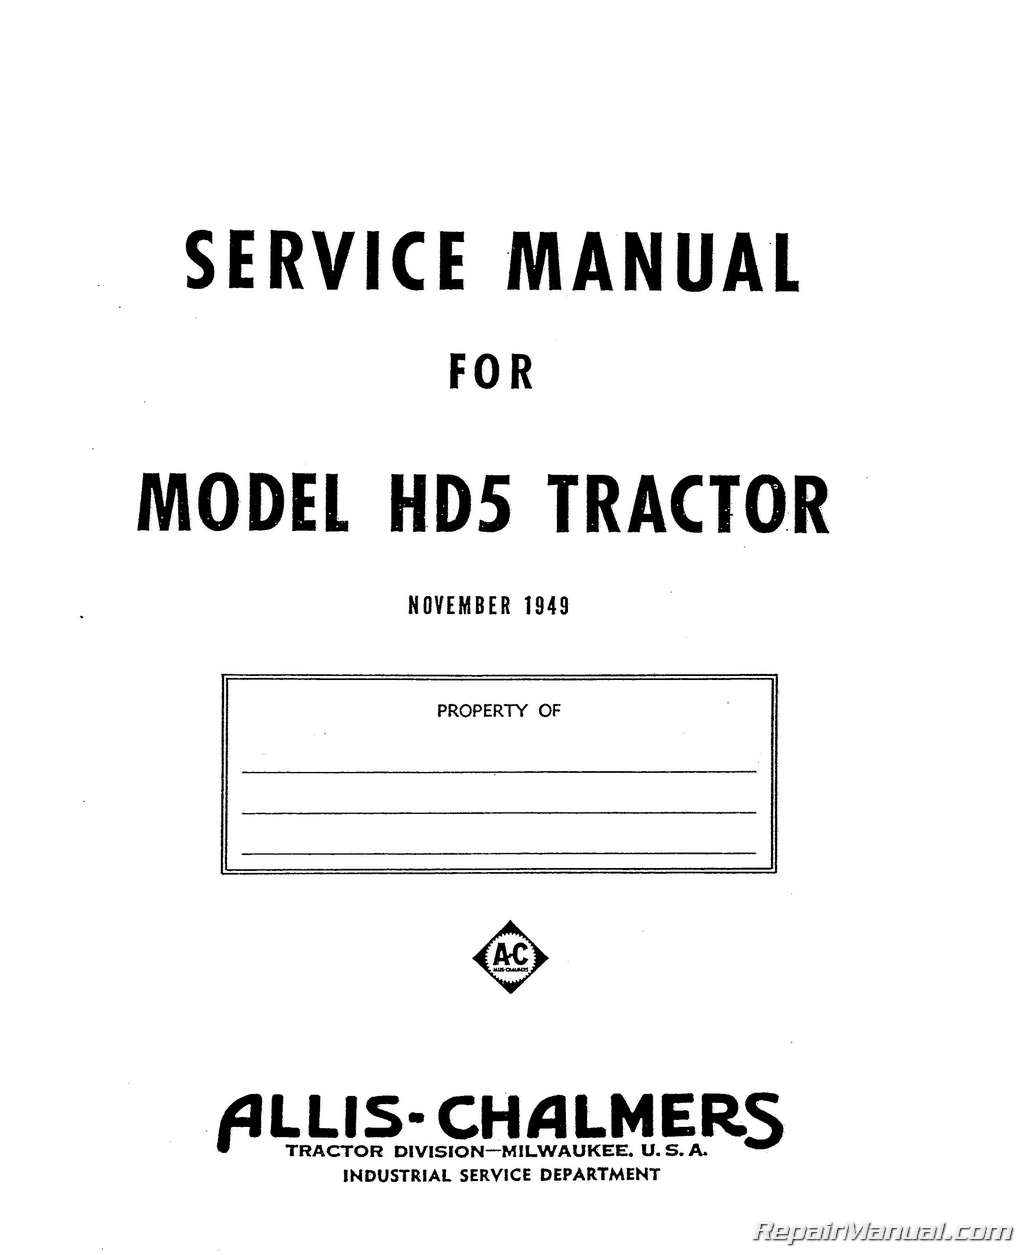 Allis Chalmers Hd 5 Wiring Diagram 34 Images For Ca Pages From Js Ac S Hd5 2 Tractor Manuals Repair Online